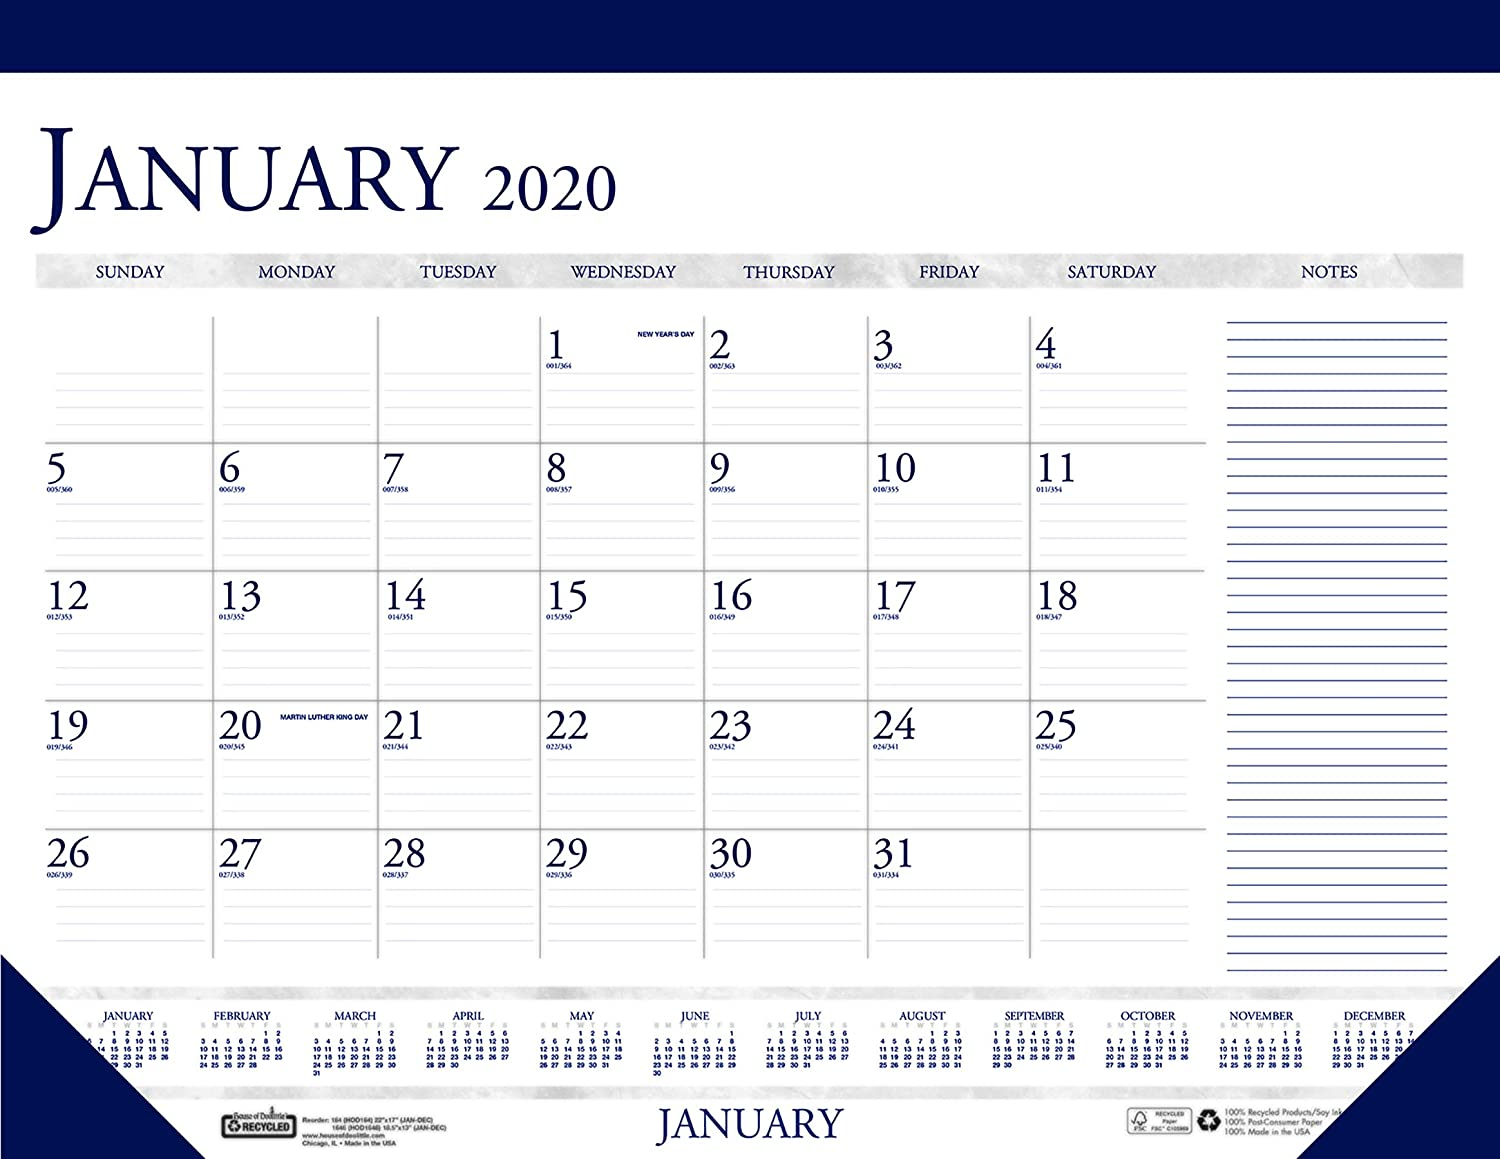 House of Doolittle 2020 Monthly Desk Pad Calendar, Classic with Notes Section, 22 x 17 Inches, January - December (HOD164-20)